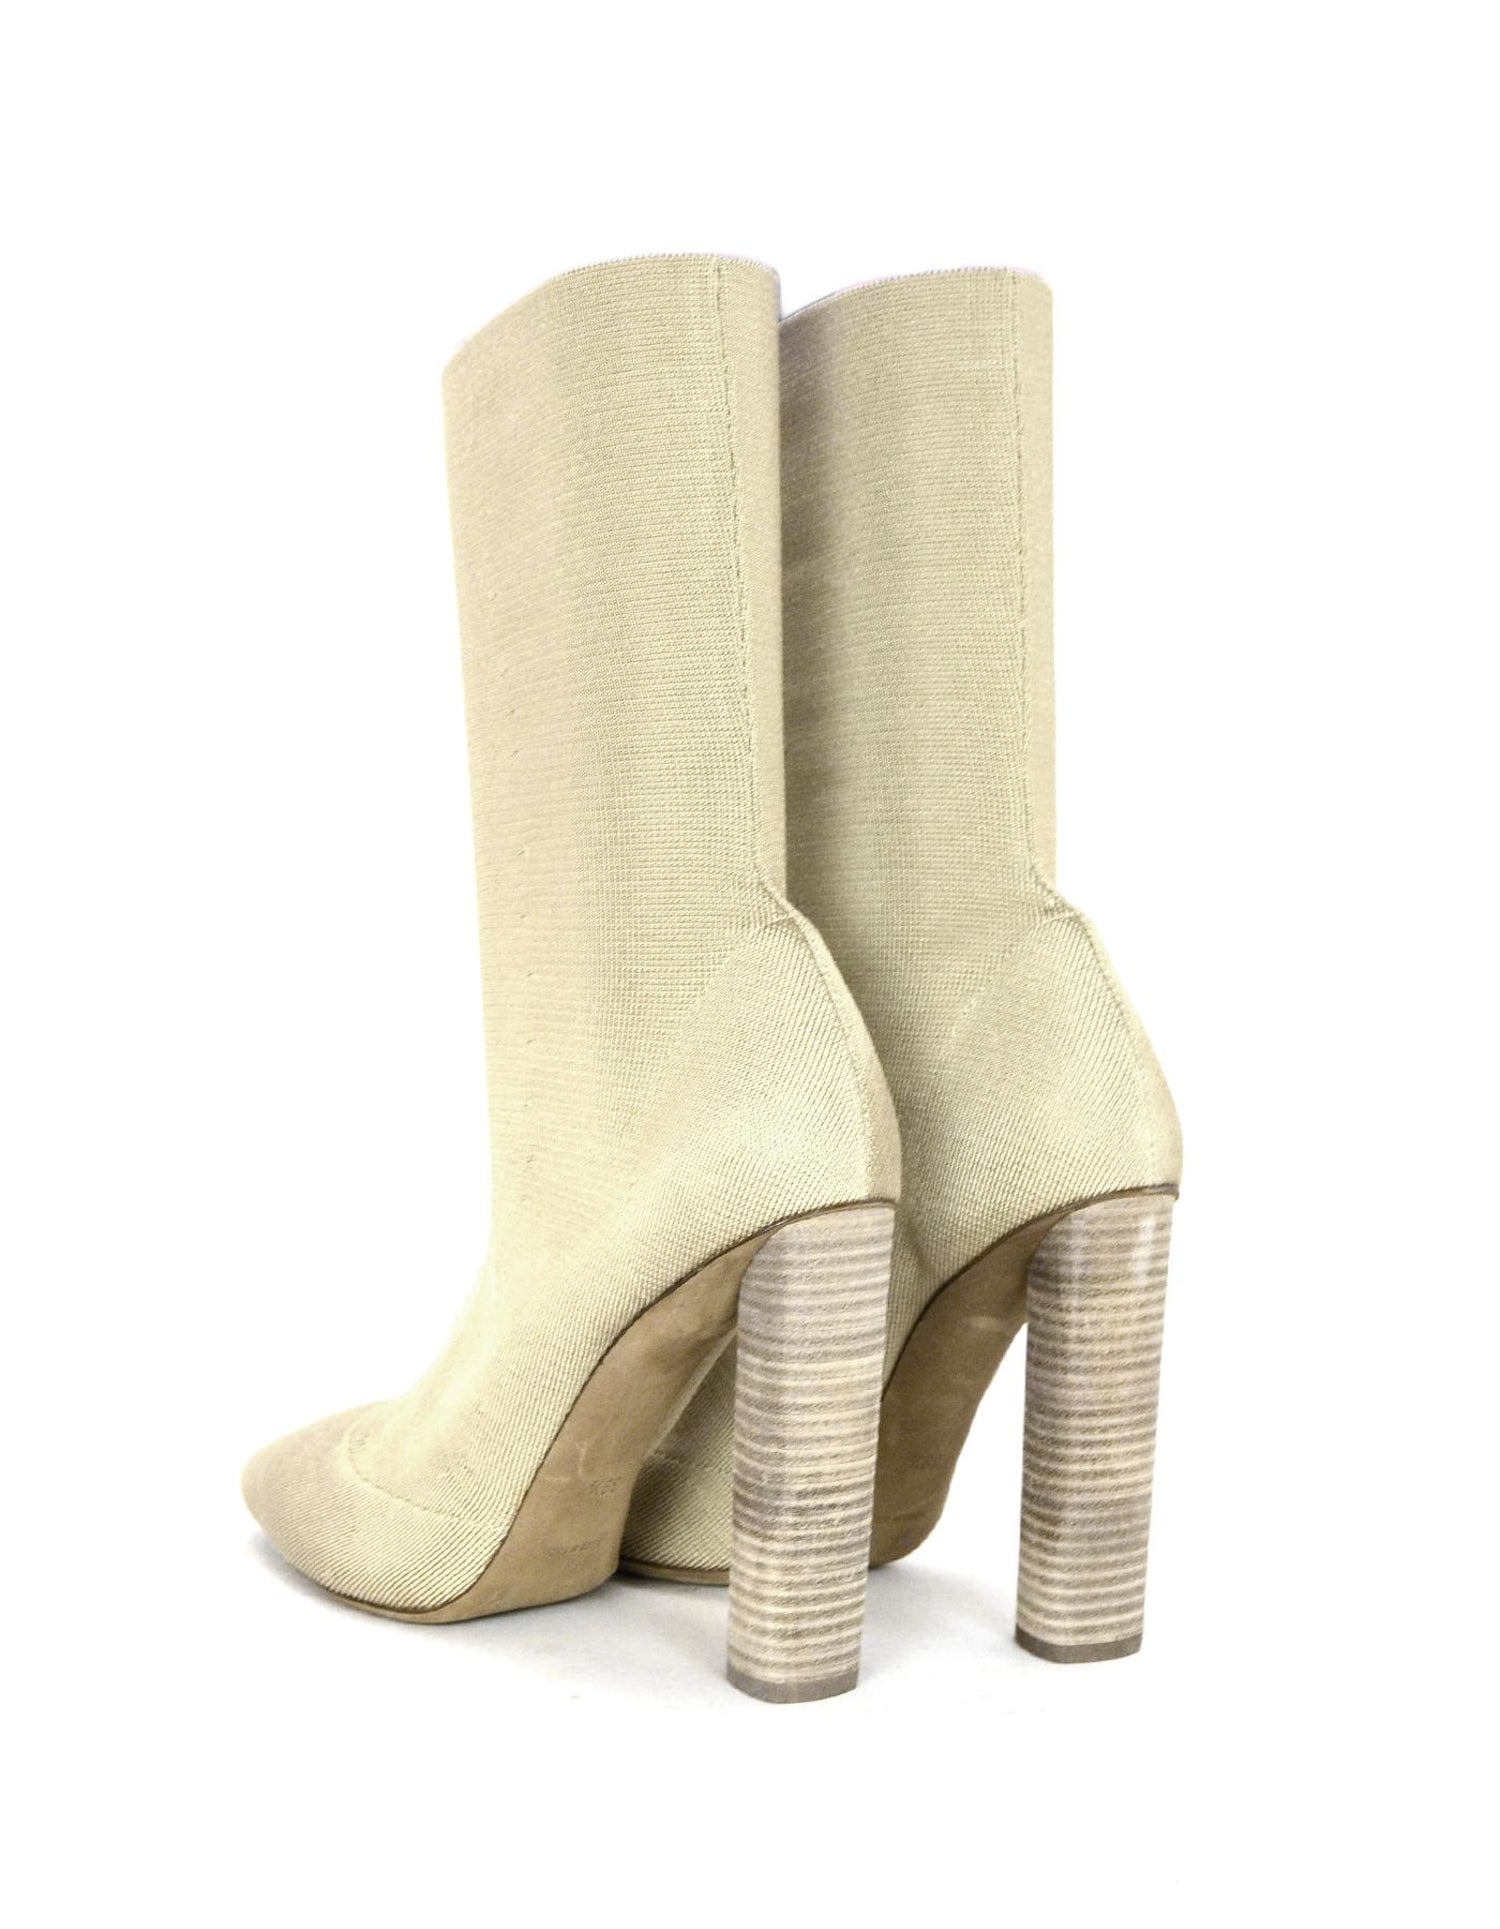 a5cce8f0c5df9 Yeezy Season 2 Beige Sock Heeled Boots Sz 39.5 For Sale at 1stdibs